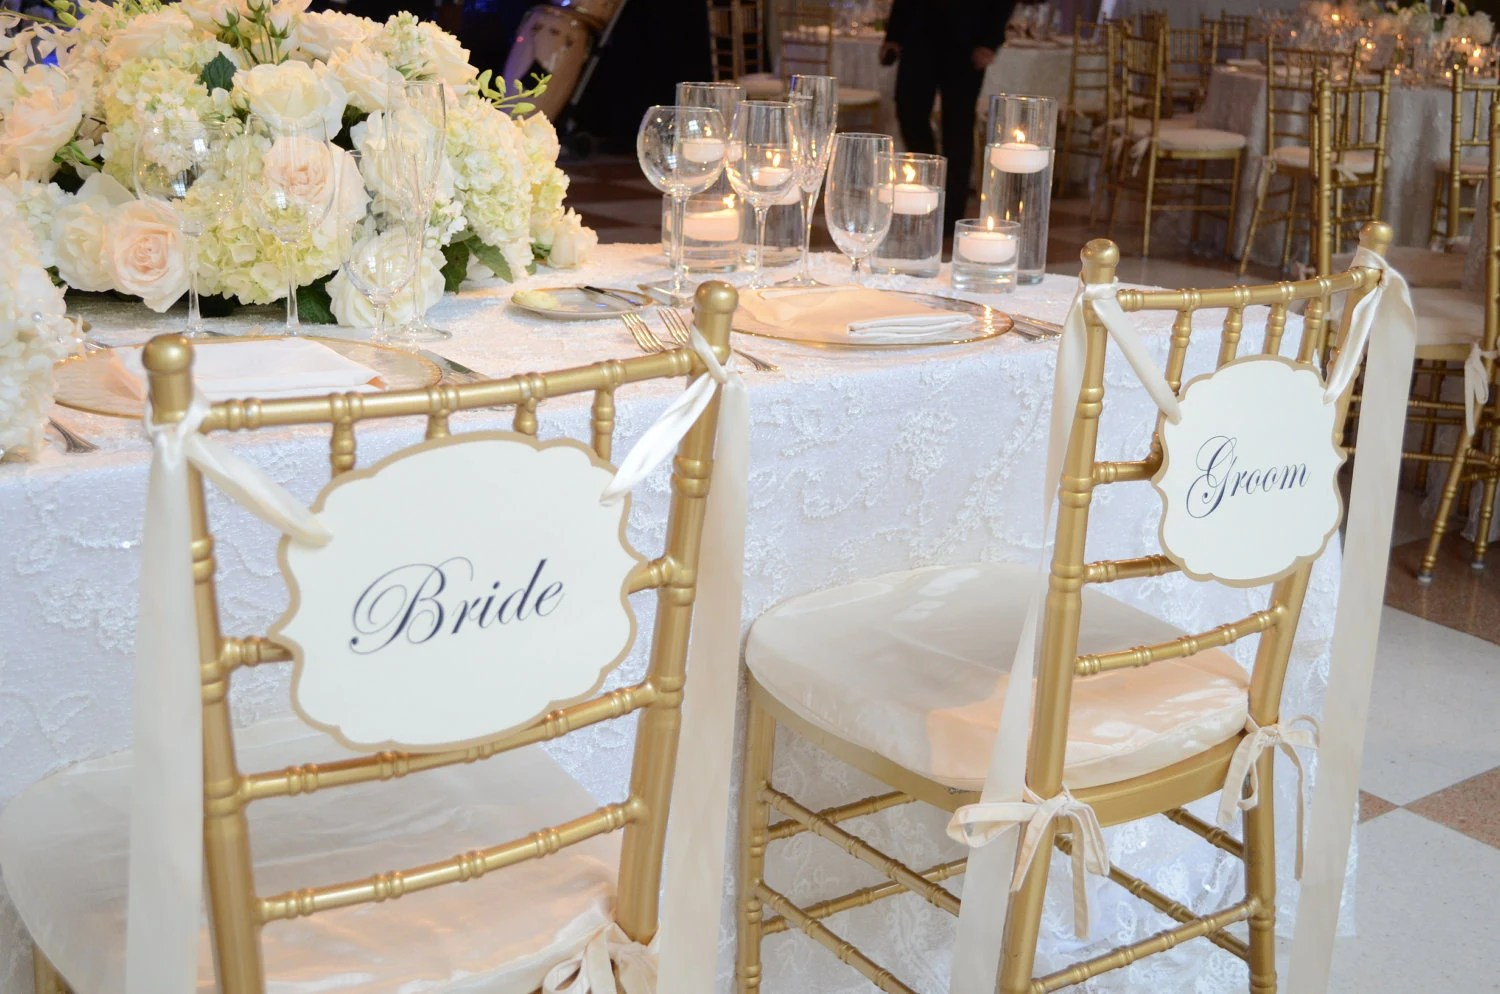 wedding bride and groom chairs bruin my first drum set with chair signs